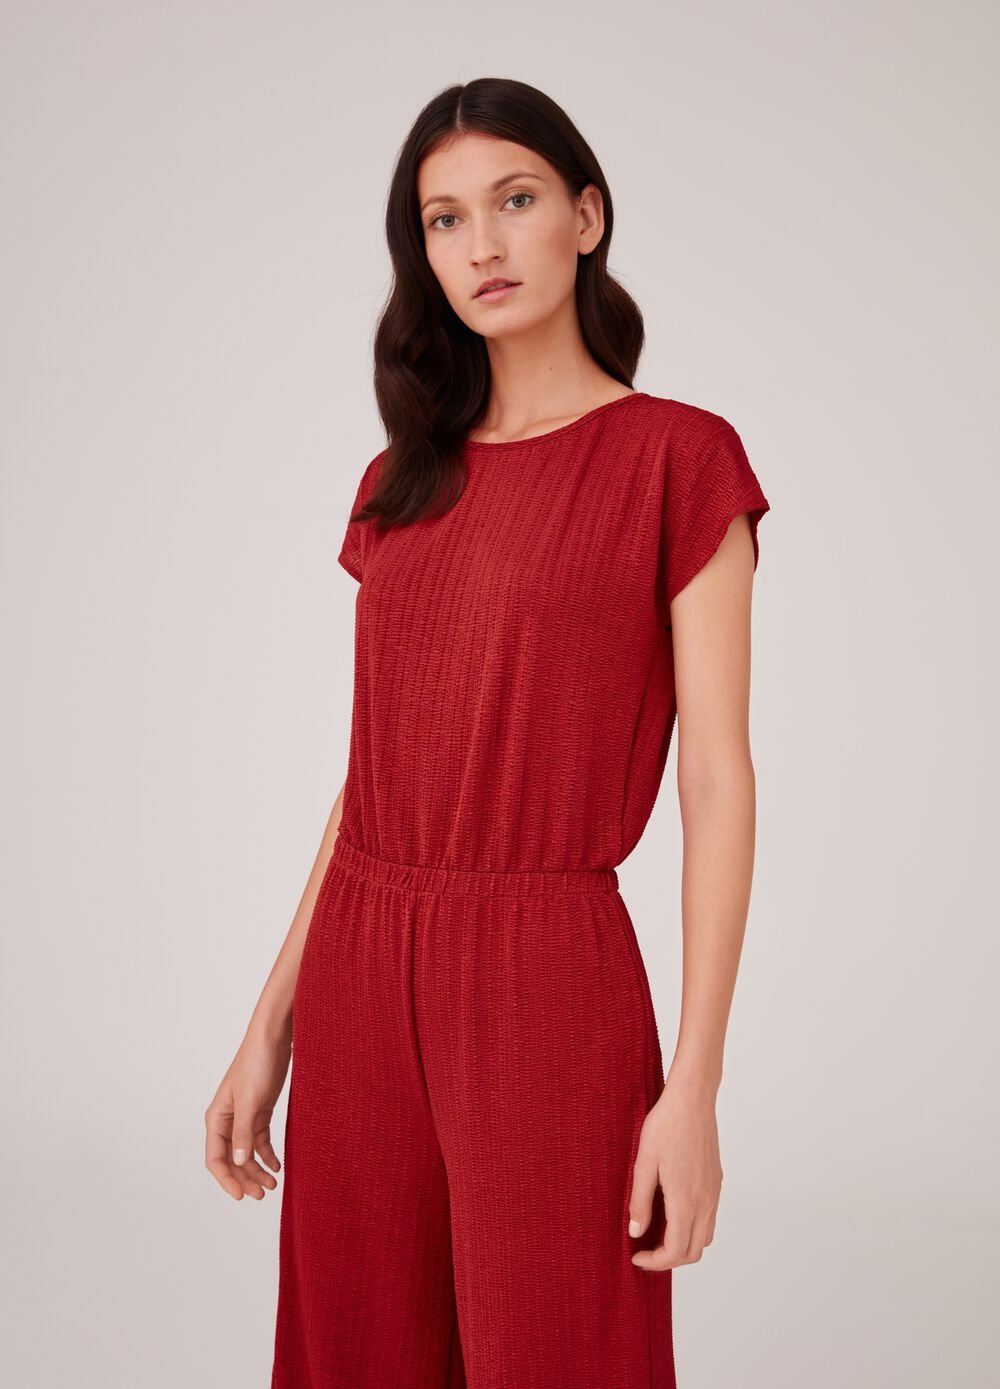 Playsuit with short sleeves and striped weave